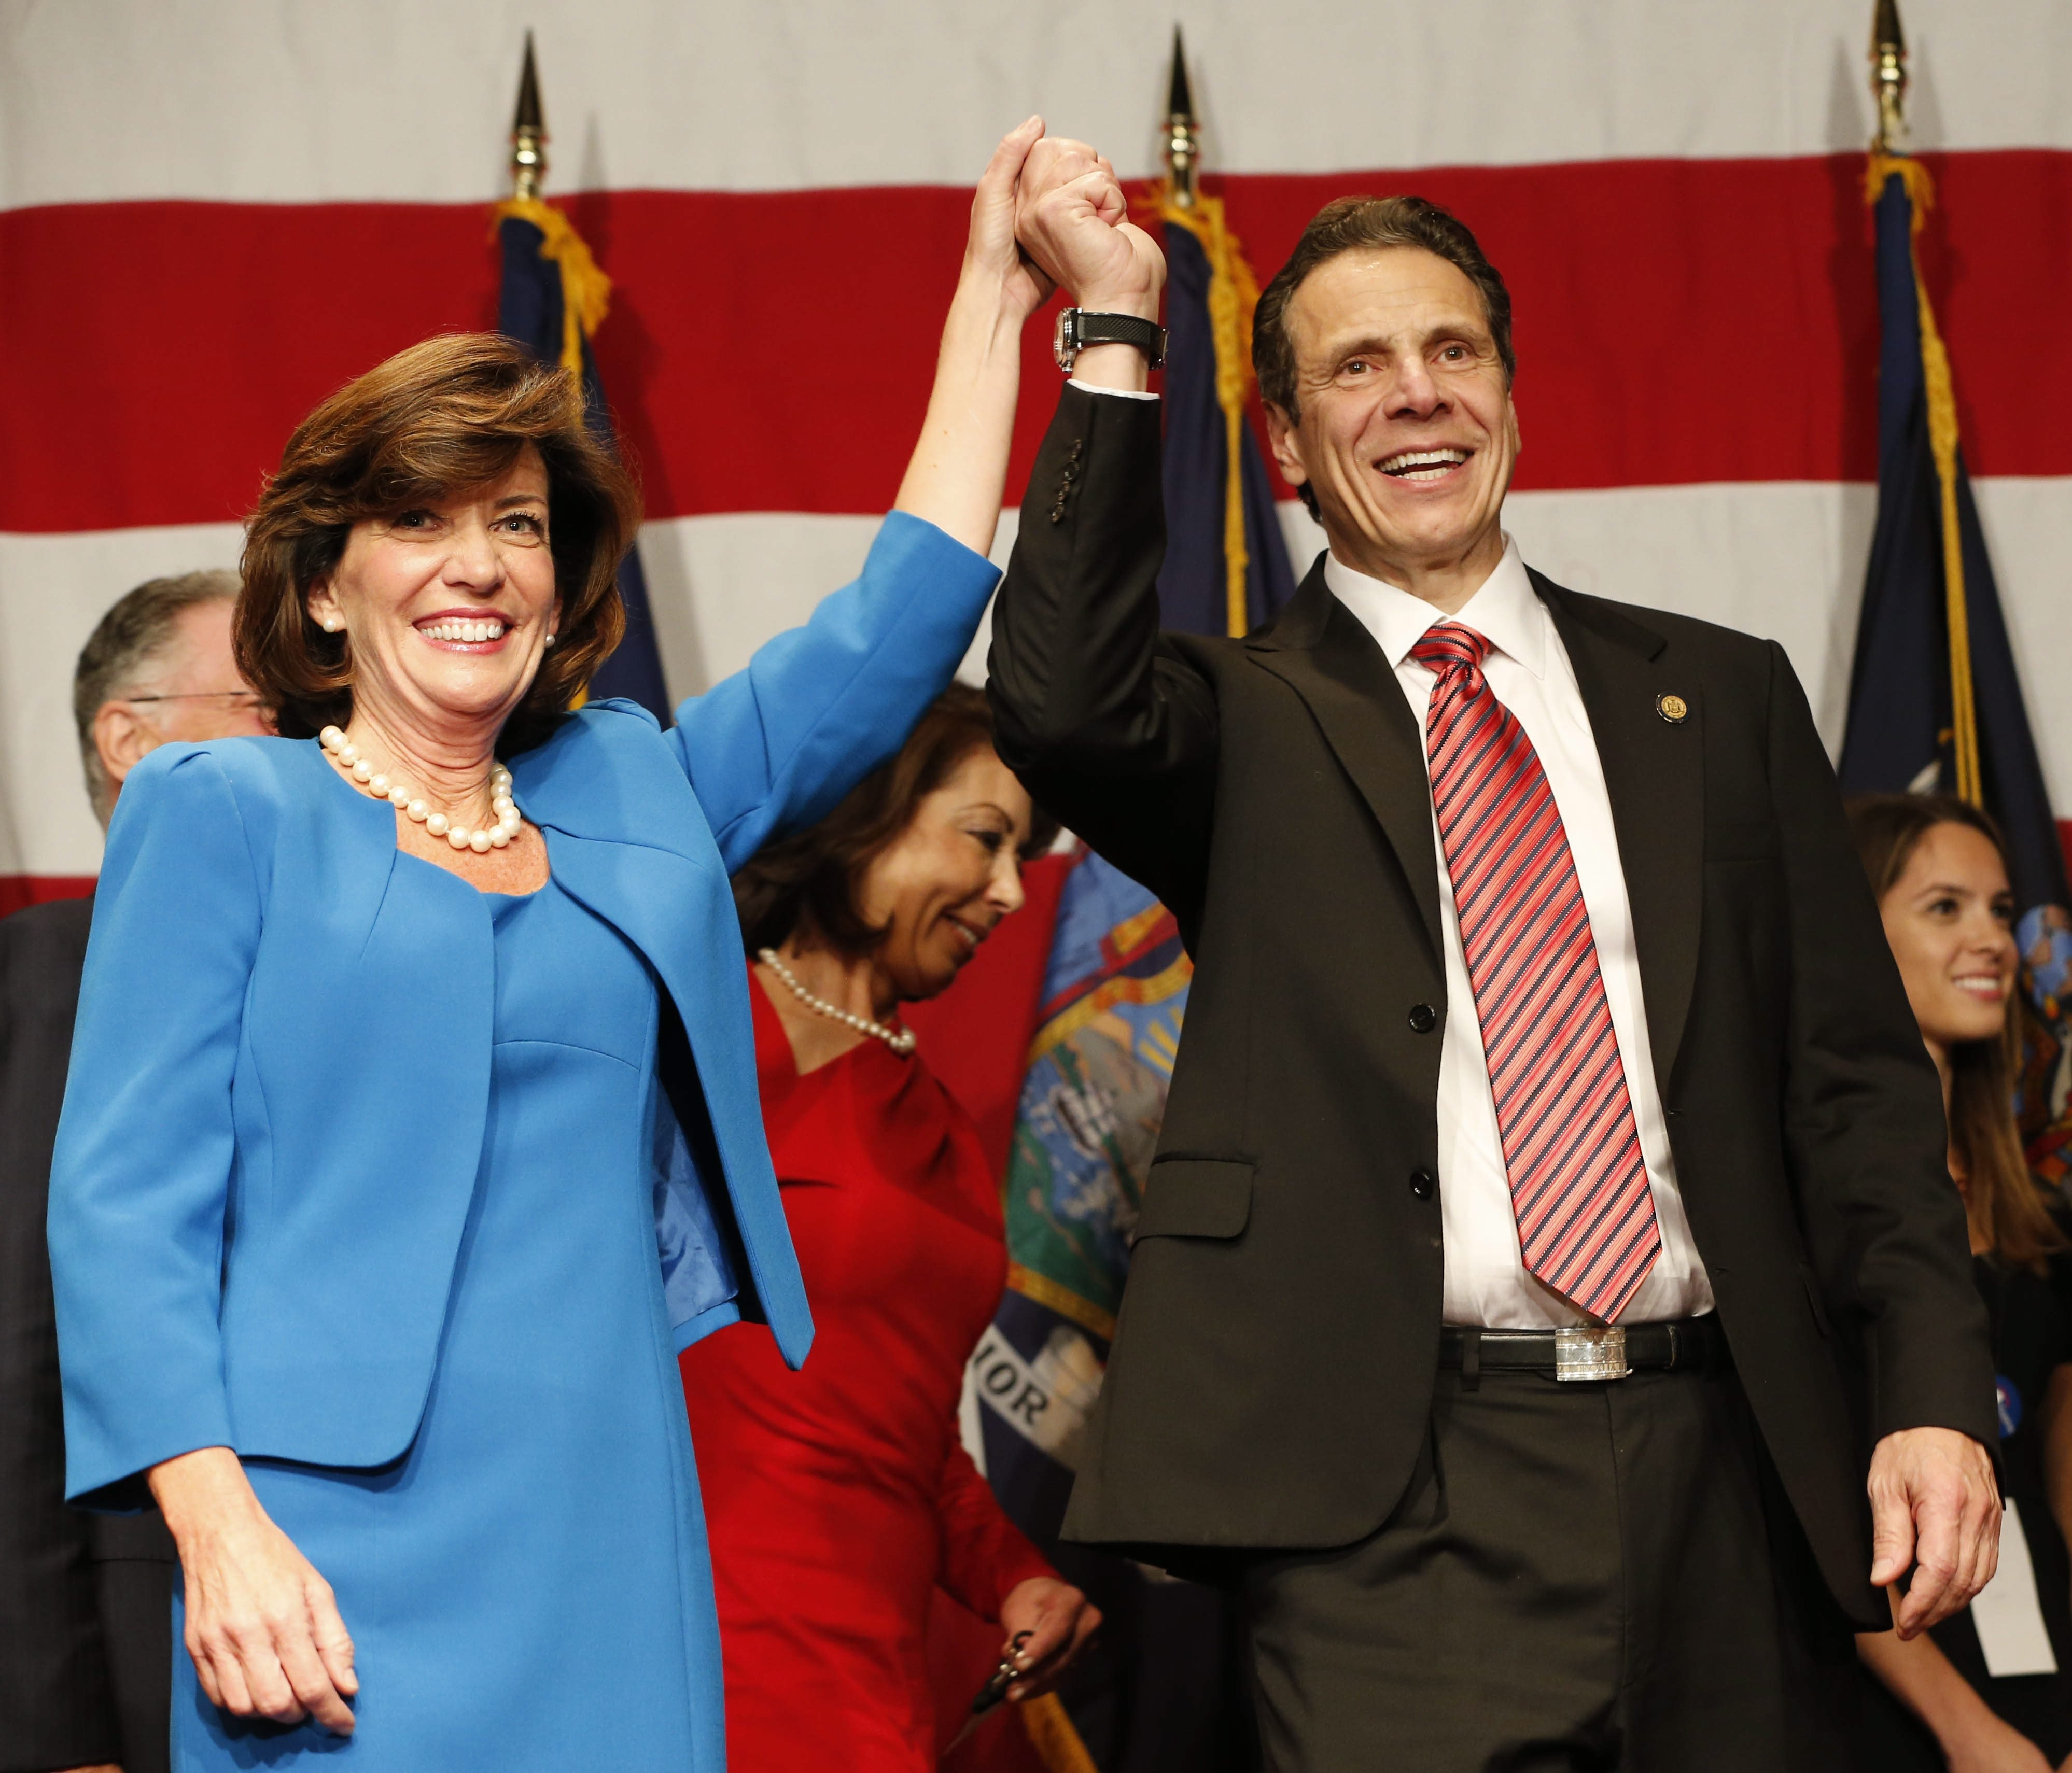 Lt. Gov-elect Kathy Hochul and Gov. Andrew Cuomo celebrate their victory in New York City on Nov. 4. Hochul's success as lieutenant governor depends largely on the role Cuomo assigns her.